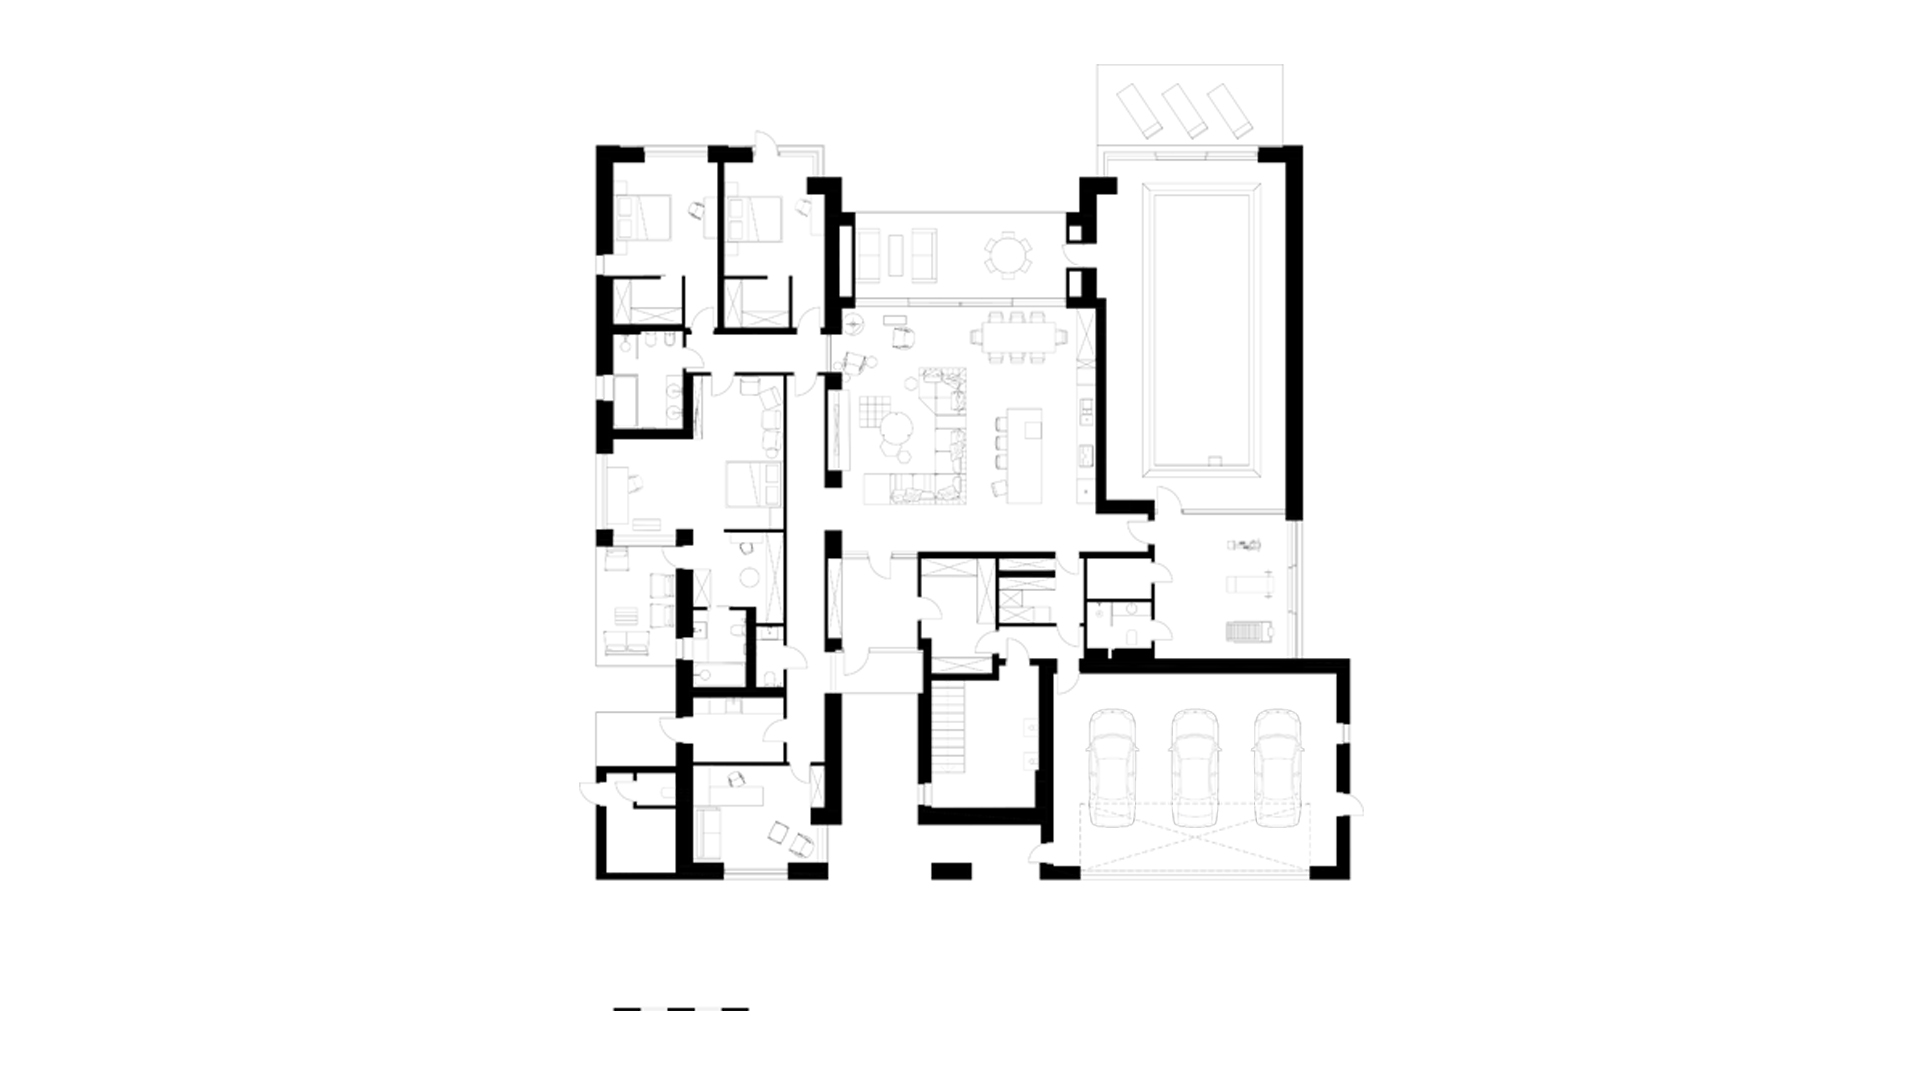 the layout of the house